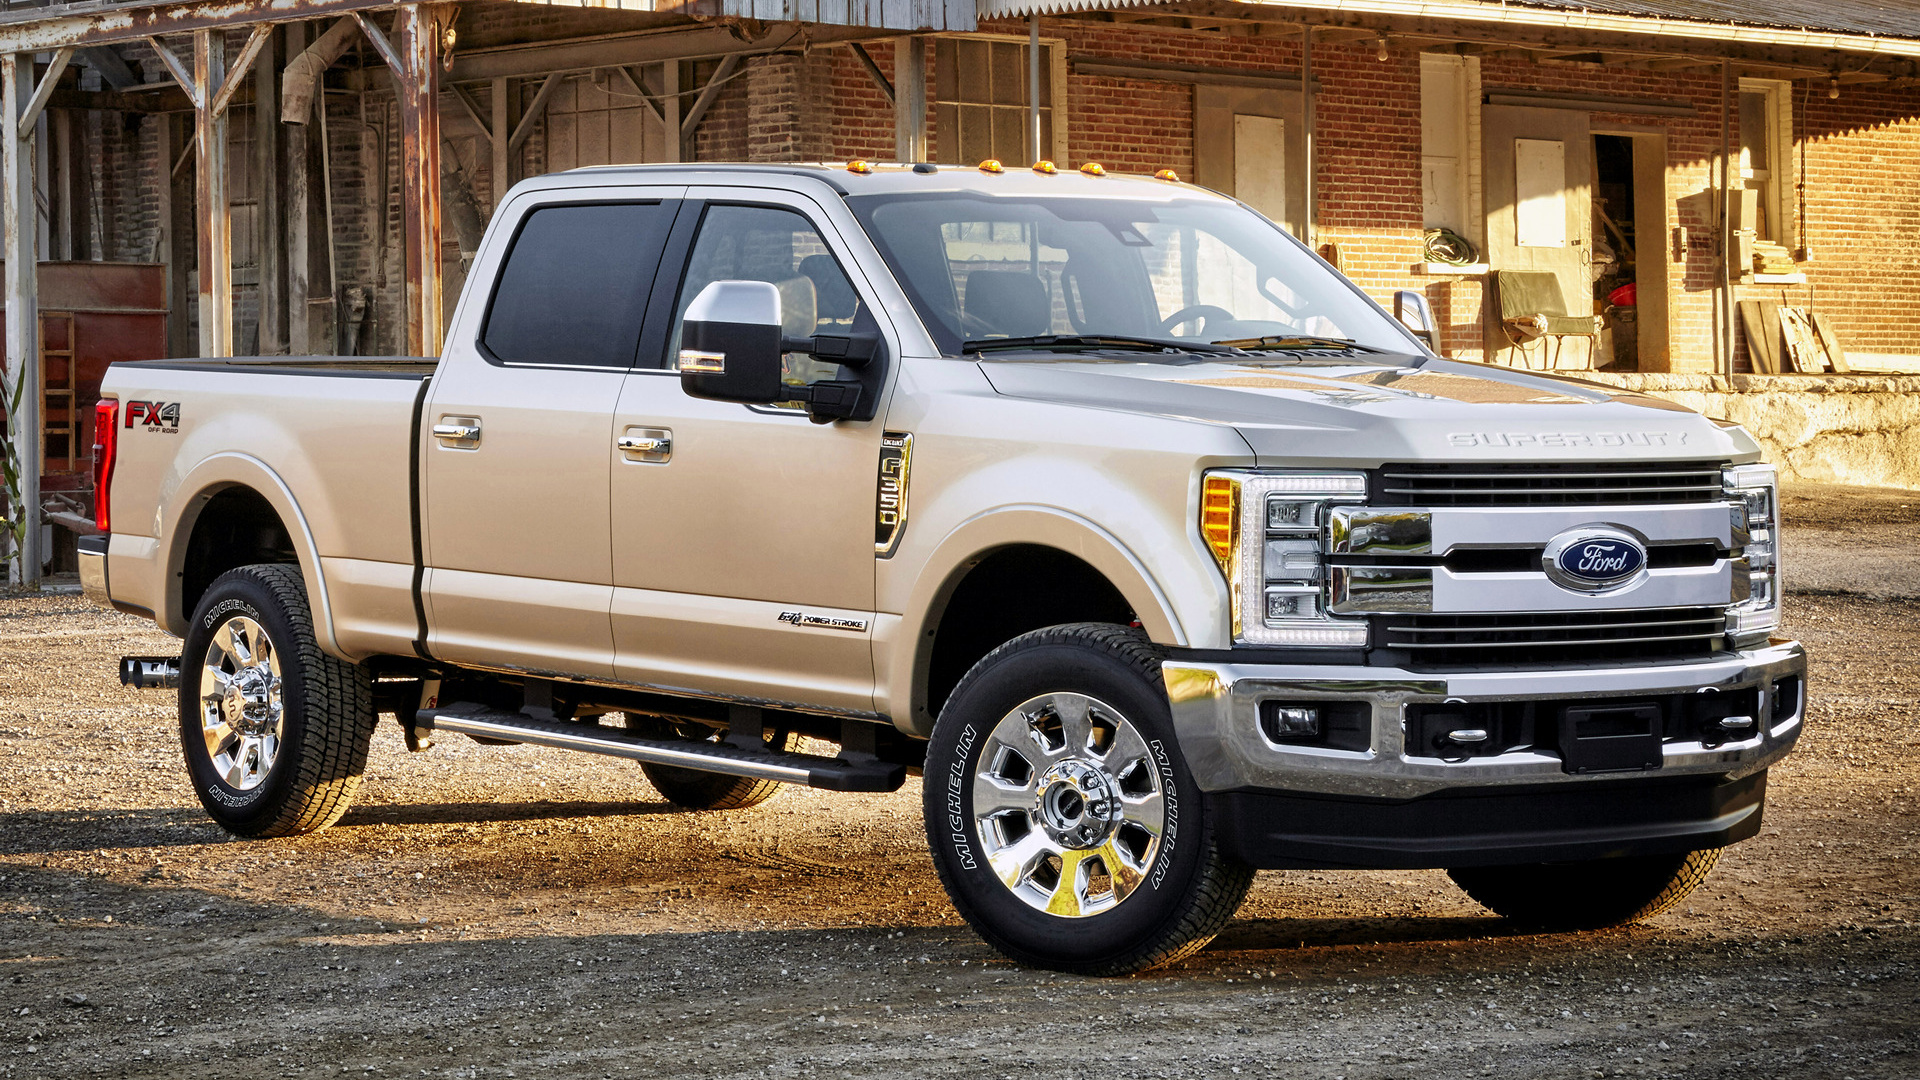 Ford F350 King Ranch FX4 Crew Cab 2017 Wallpapers and HD Images 1920x1080